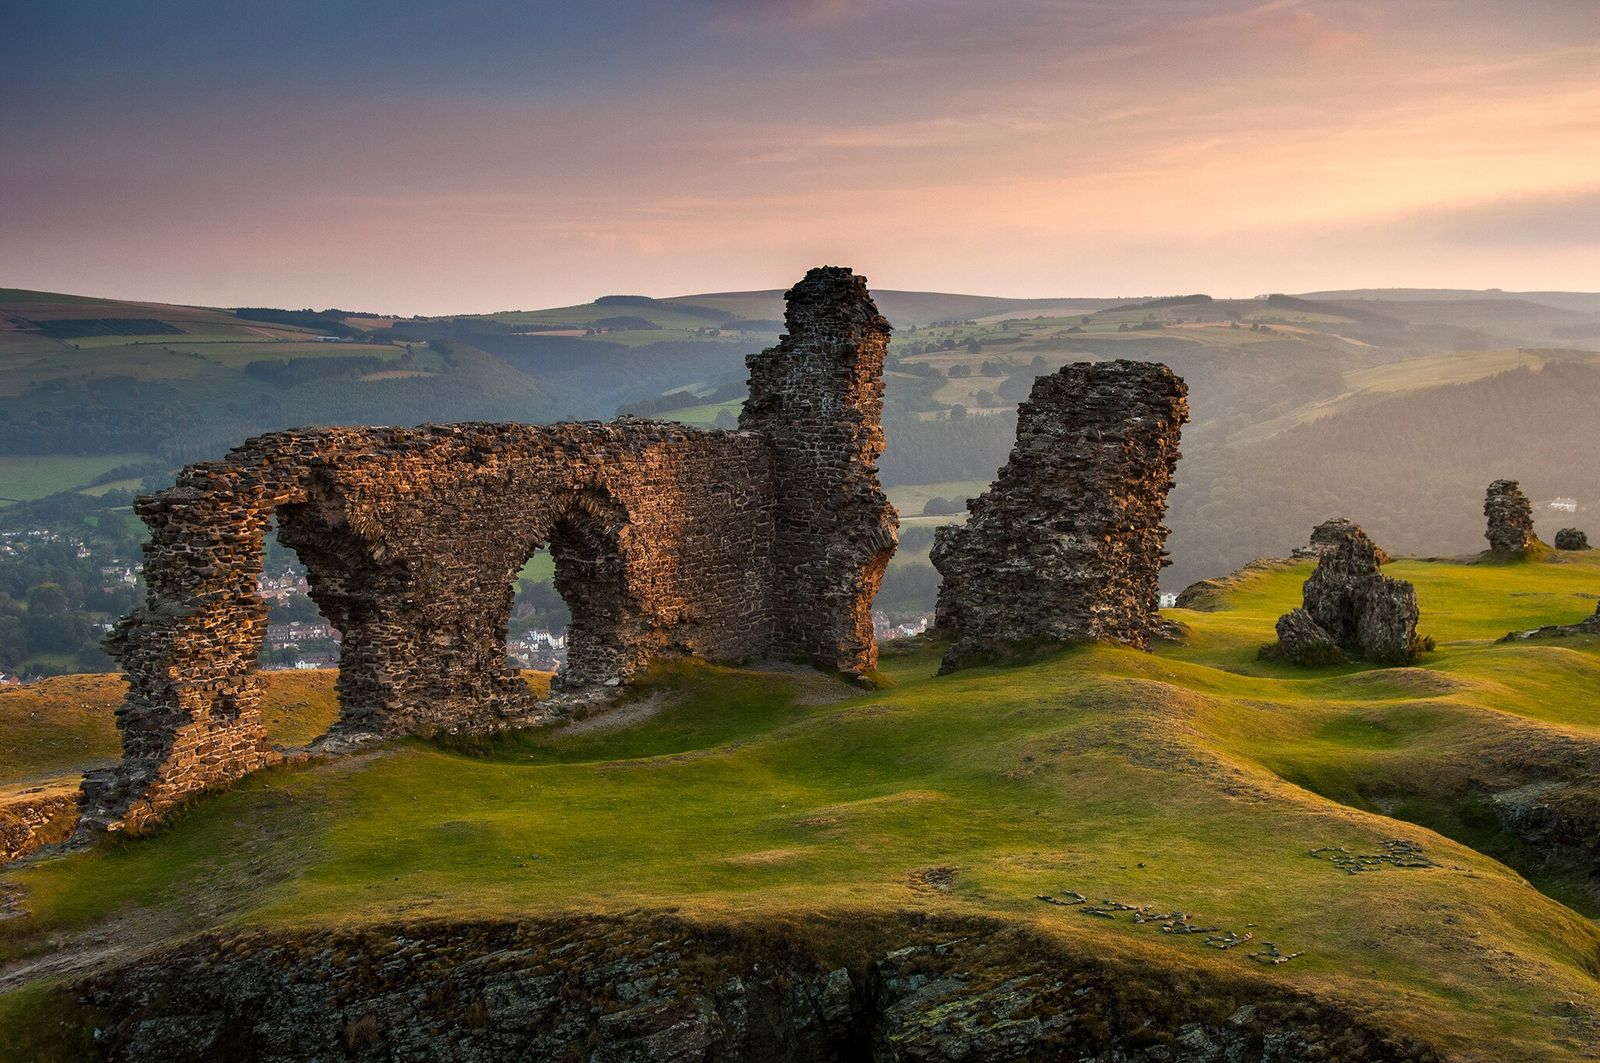 The ruins of the medieval Castell Dinas Bran tower above the Dee Valley and the bustling ...